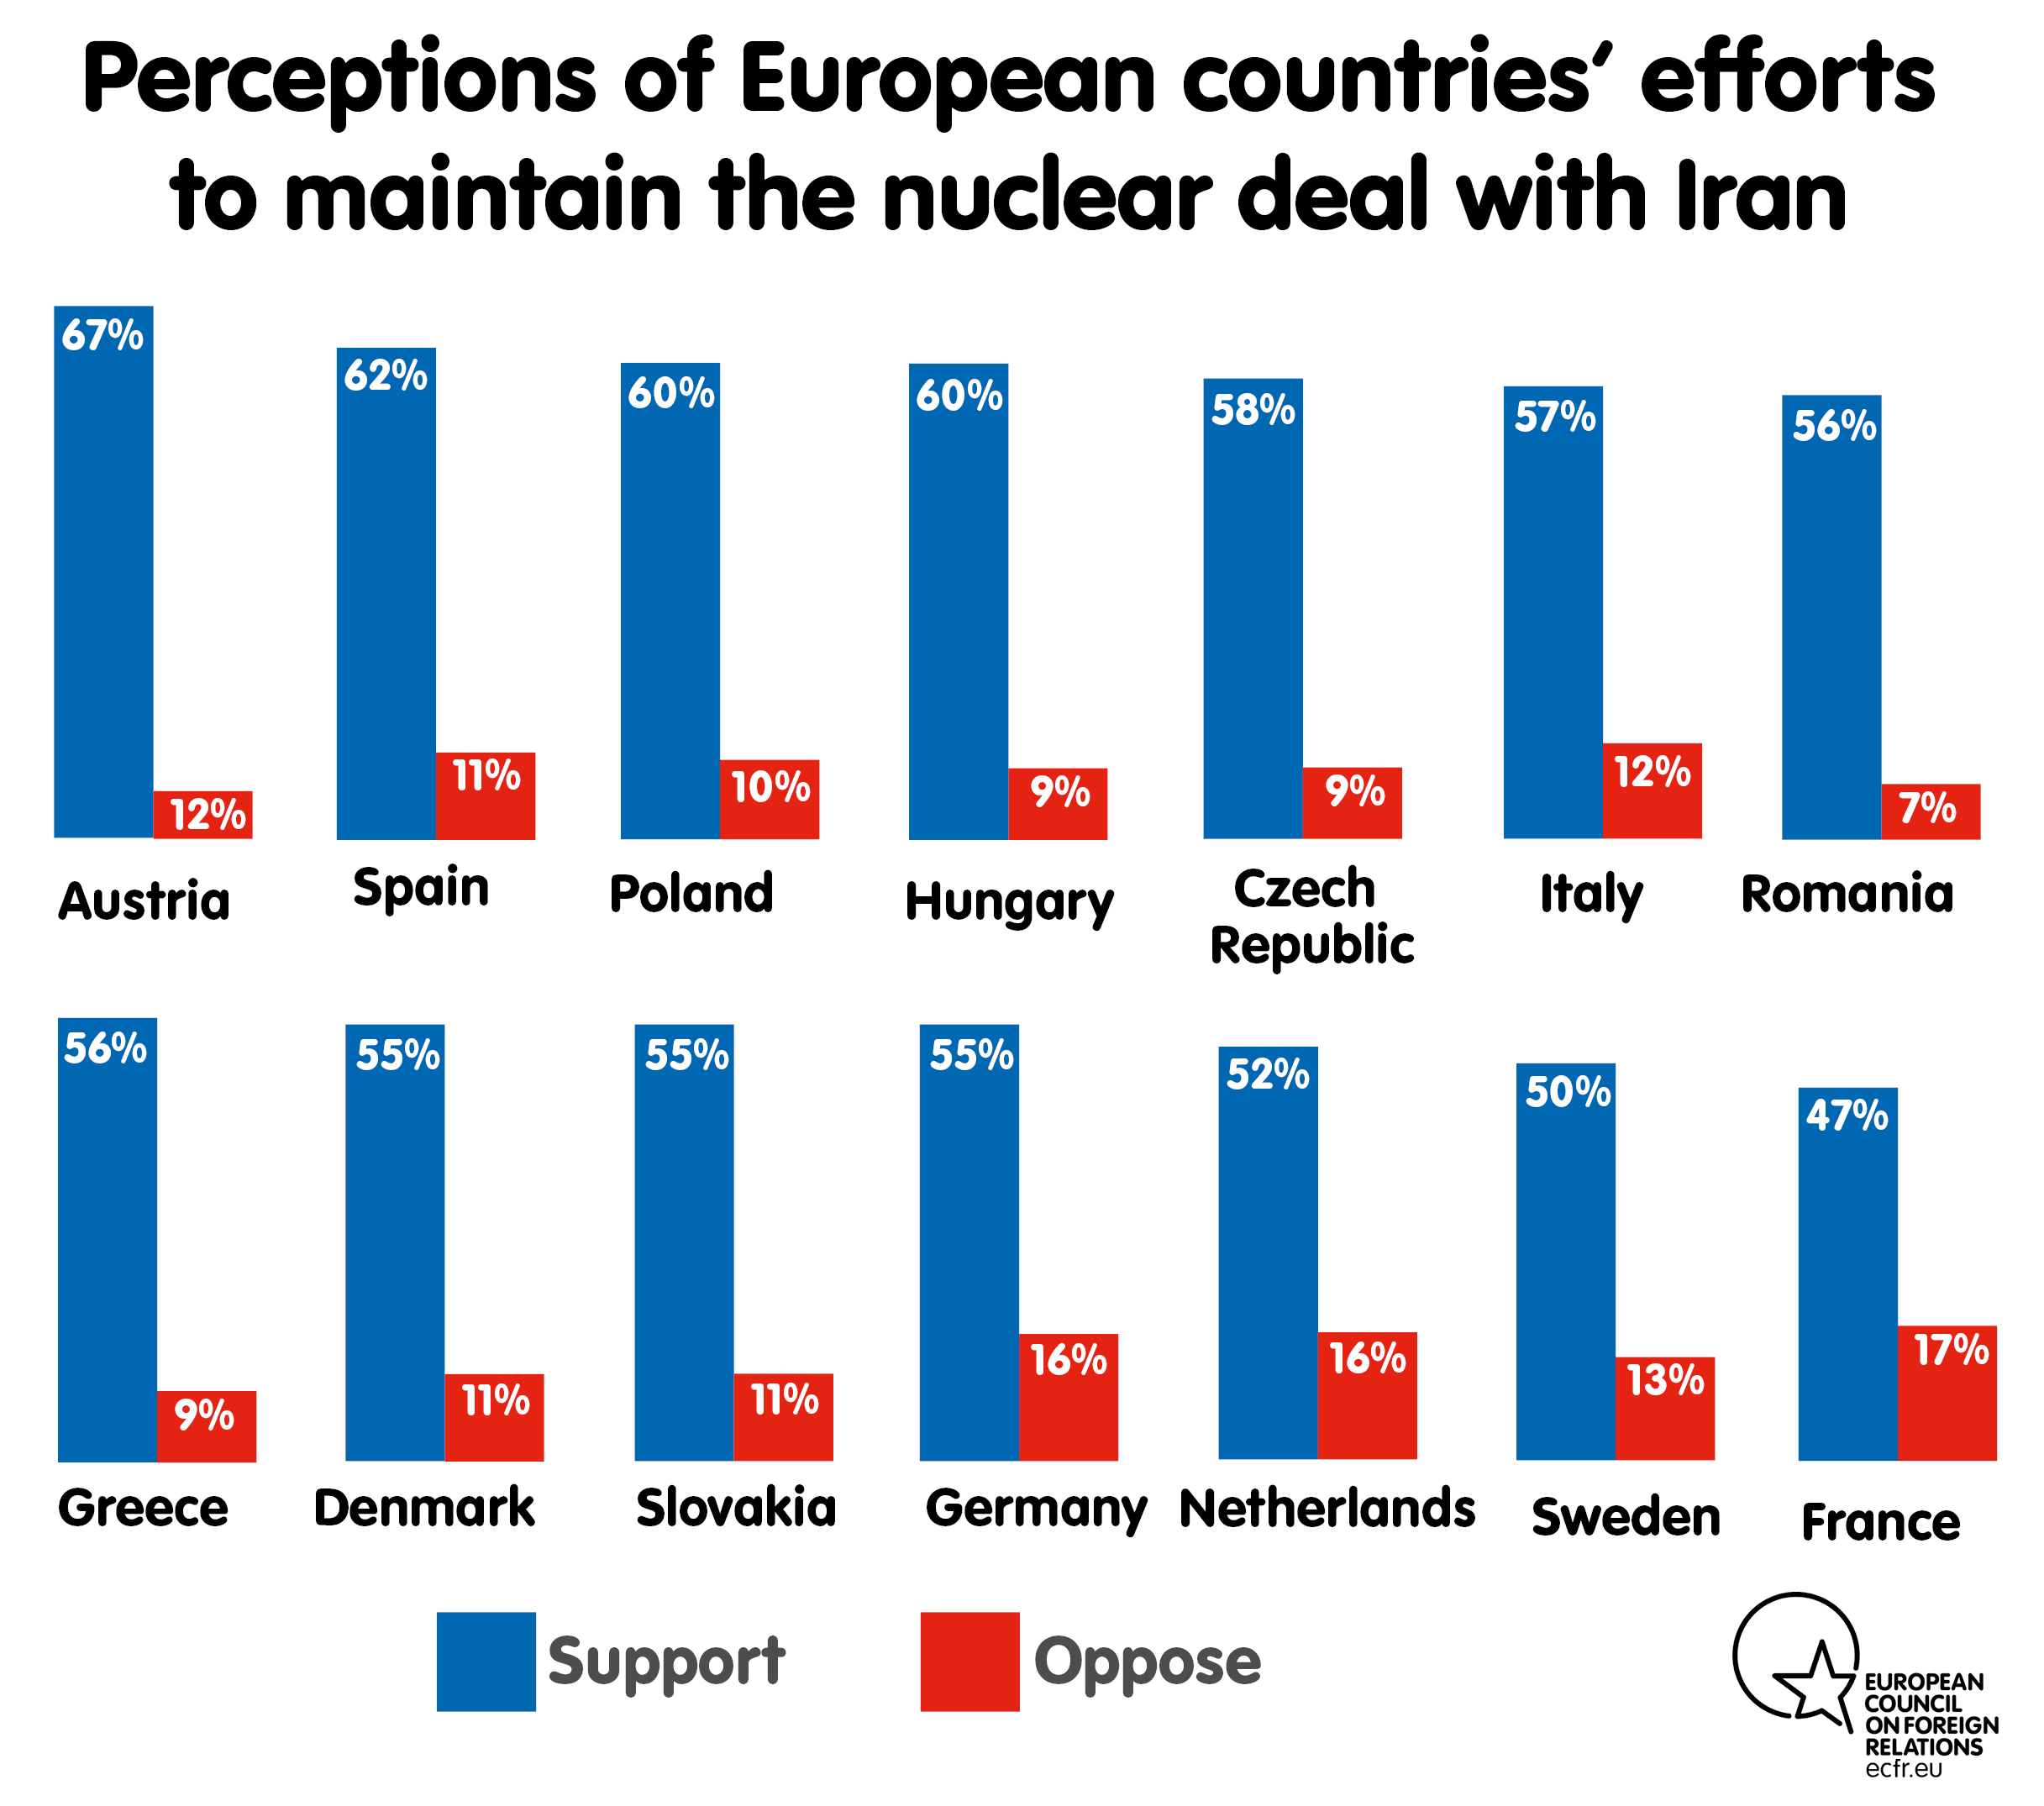 Perceptions of European countries' efforts to maintain the nuclear deal with Iran